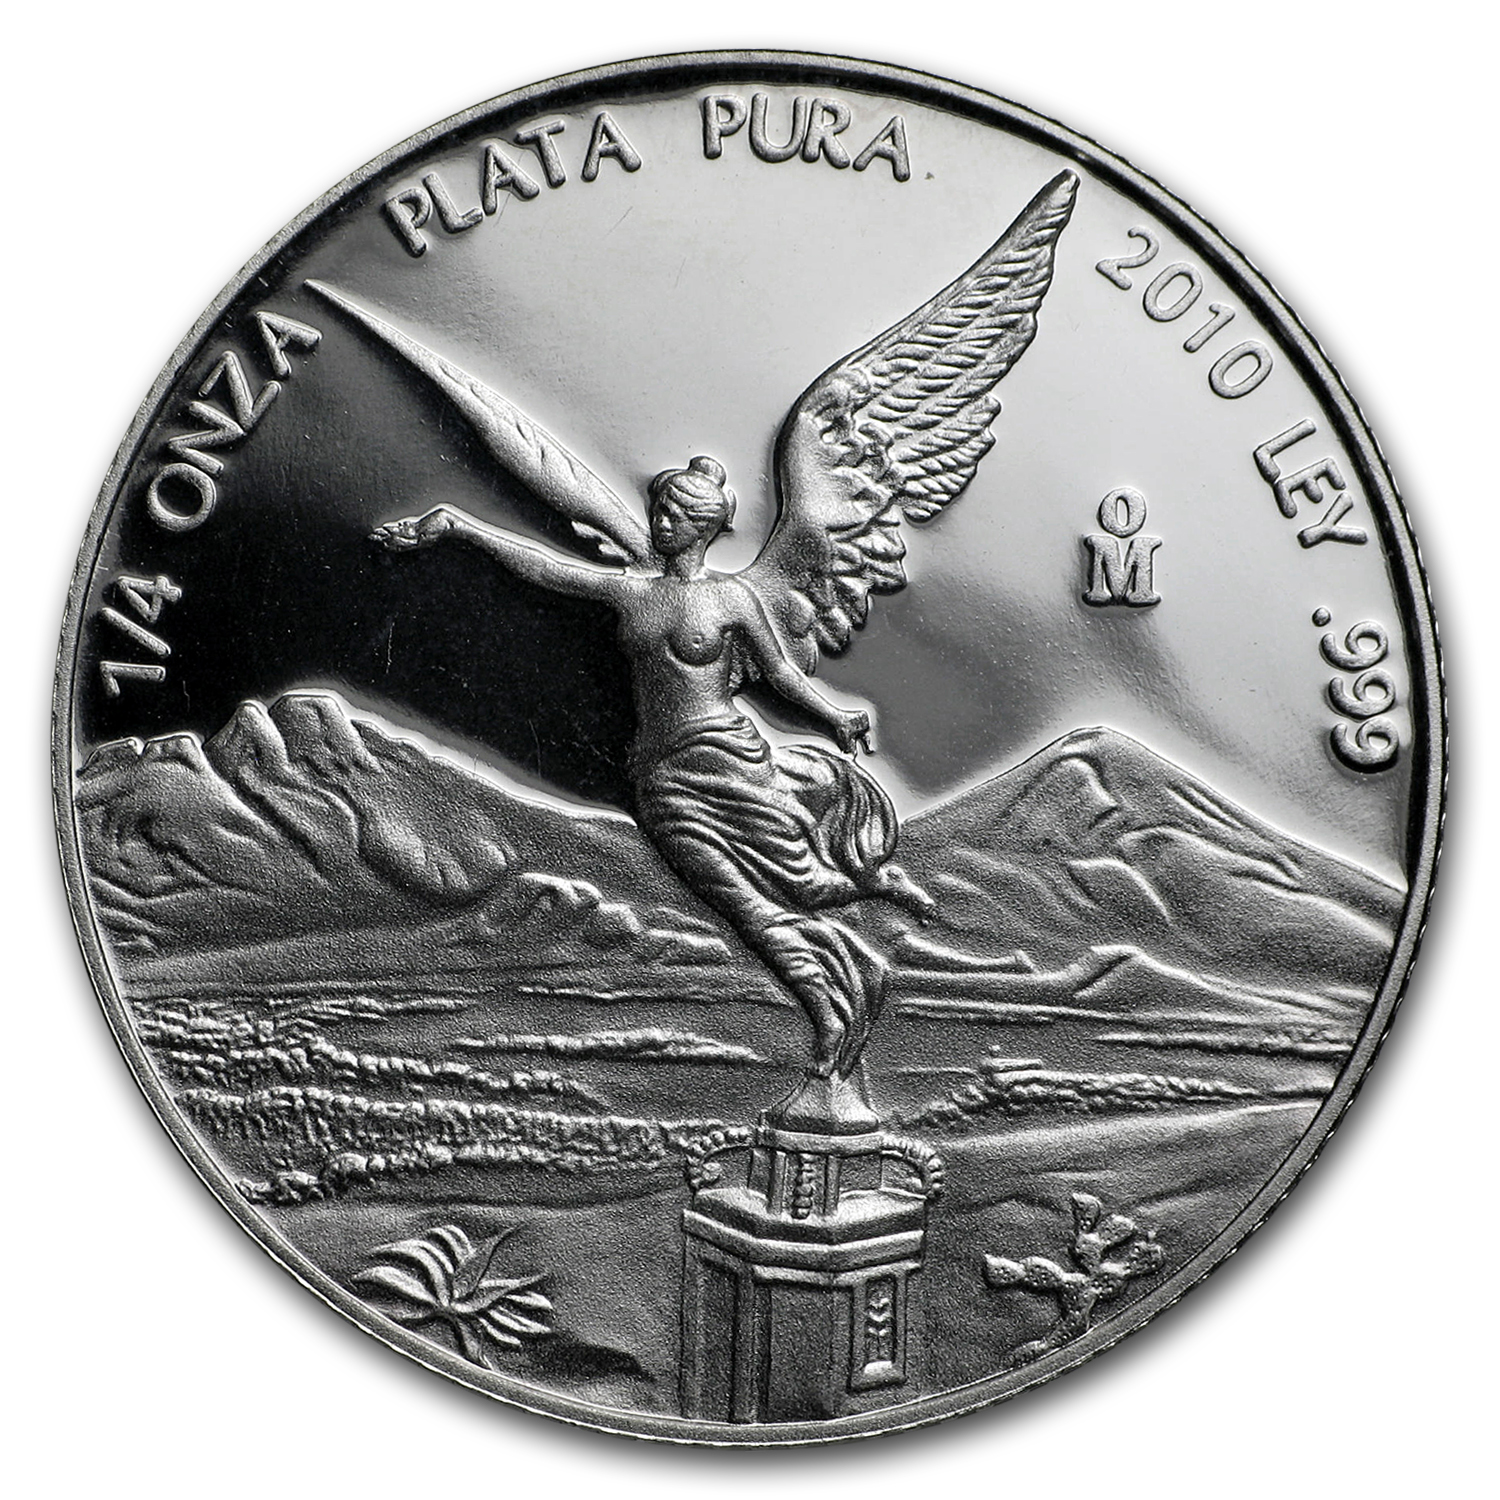 2010 Mexico 1/4 oz Silver Libertad Proof (In Capsule)